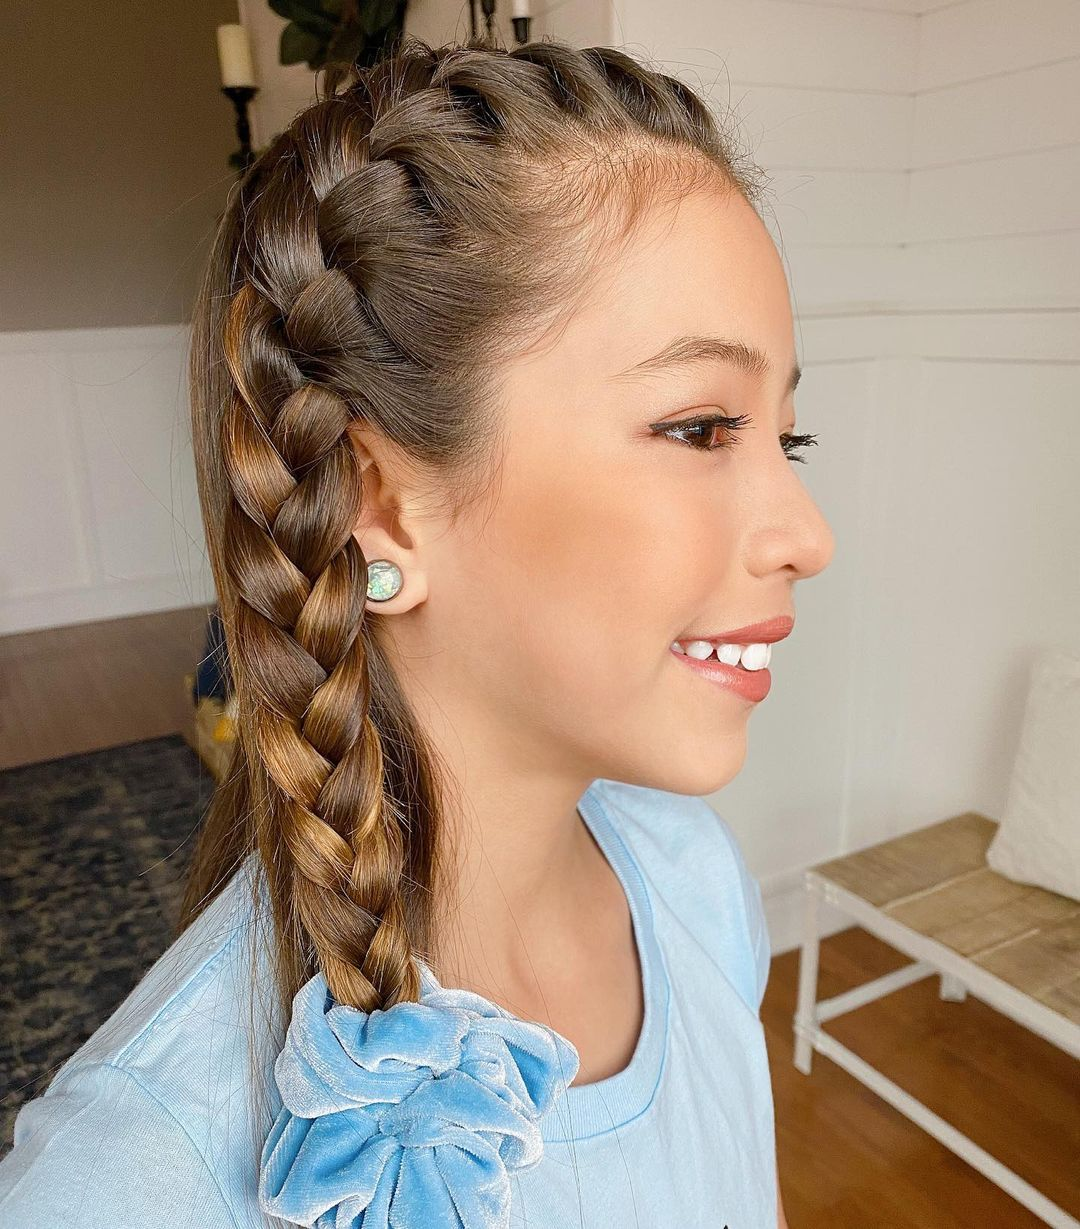 One-Sided Neat Braid Hairstyle to Turn Heads